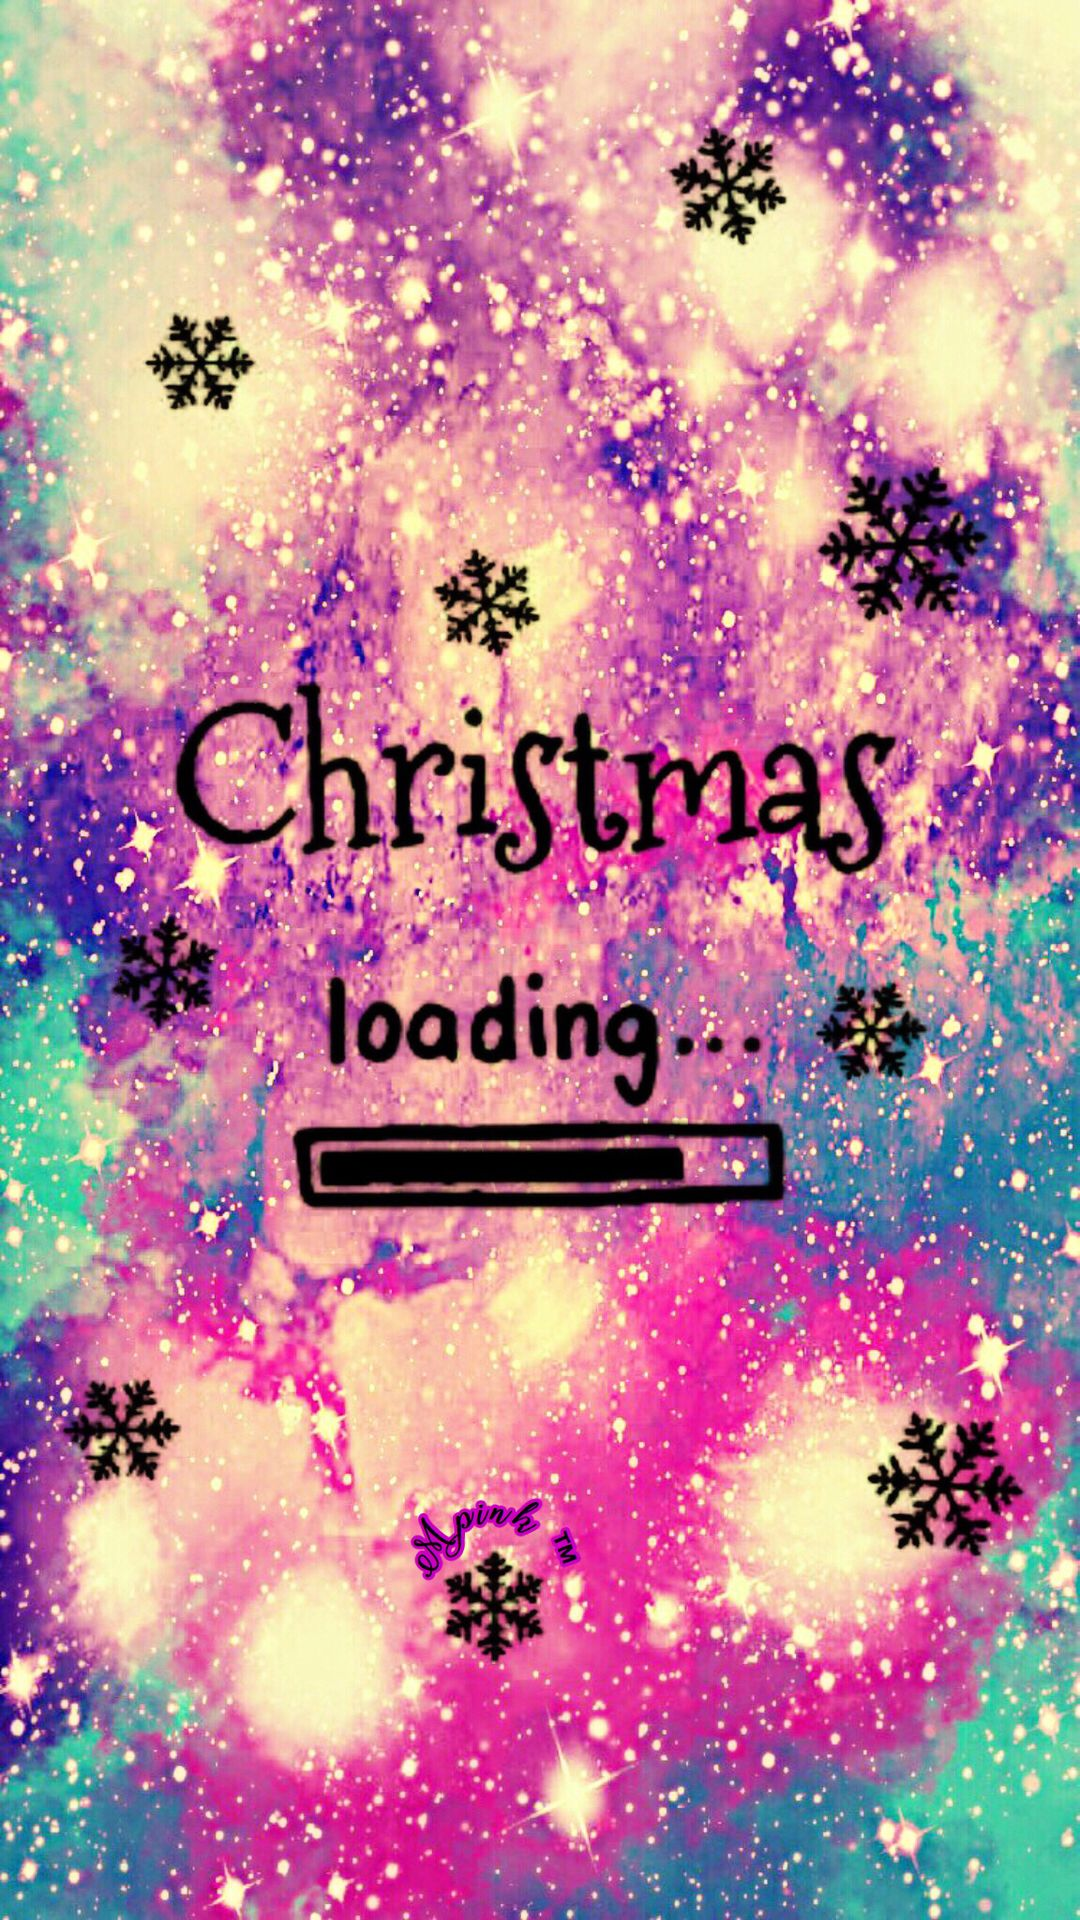 Christmas is loading galaxy wallpaper androidwallpaper - Galaxy christmas wallpaper ...